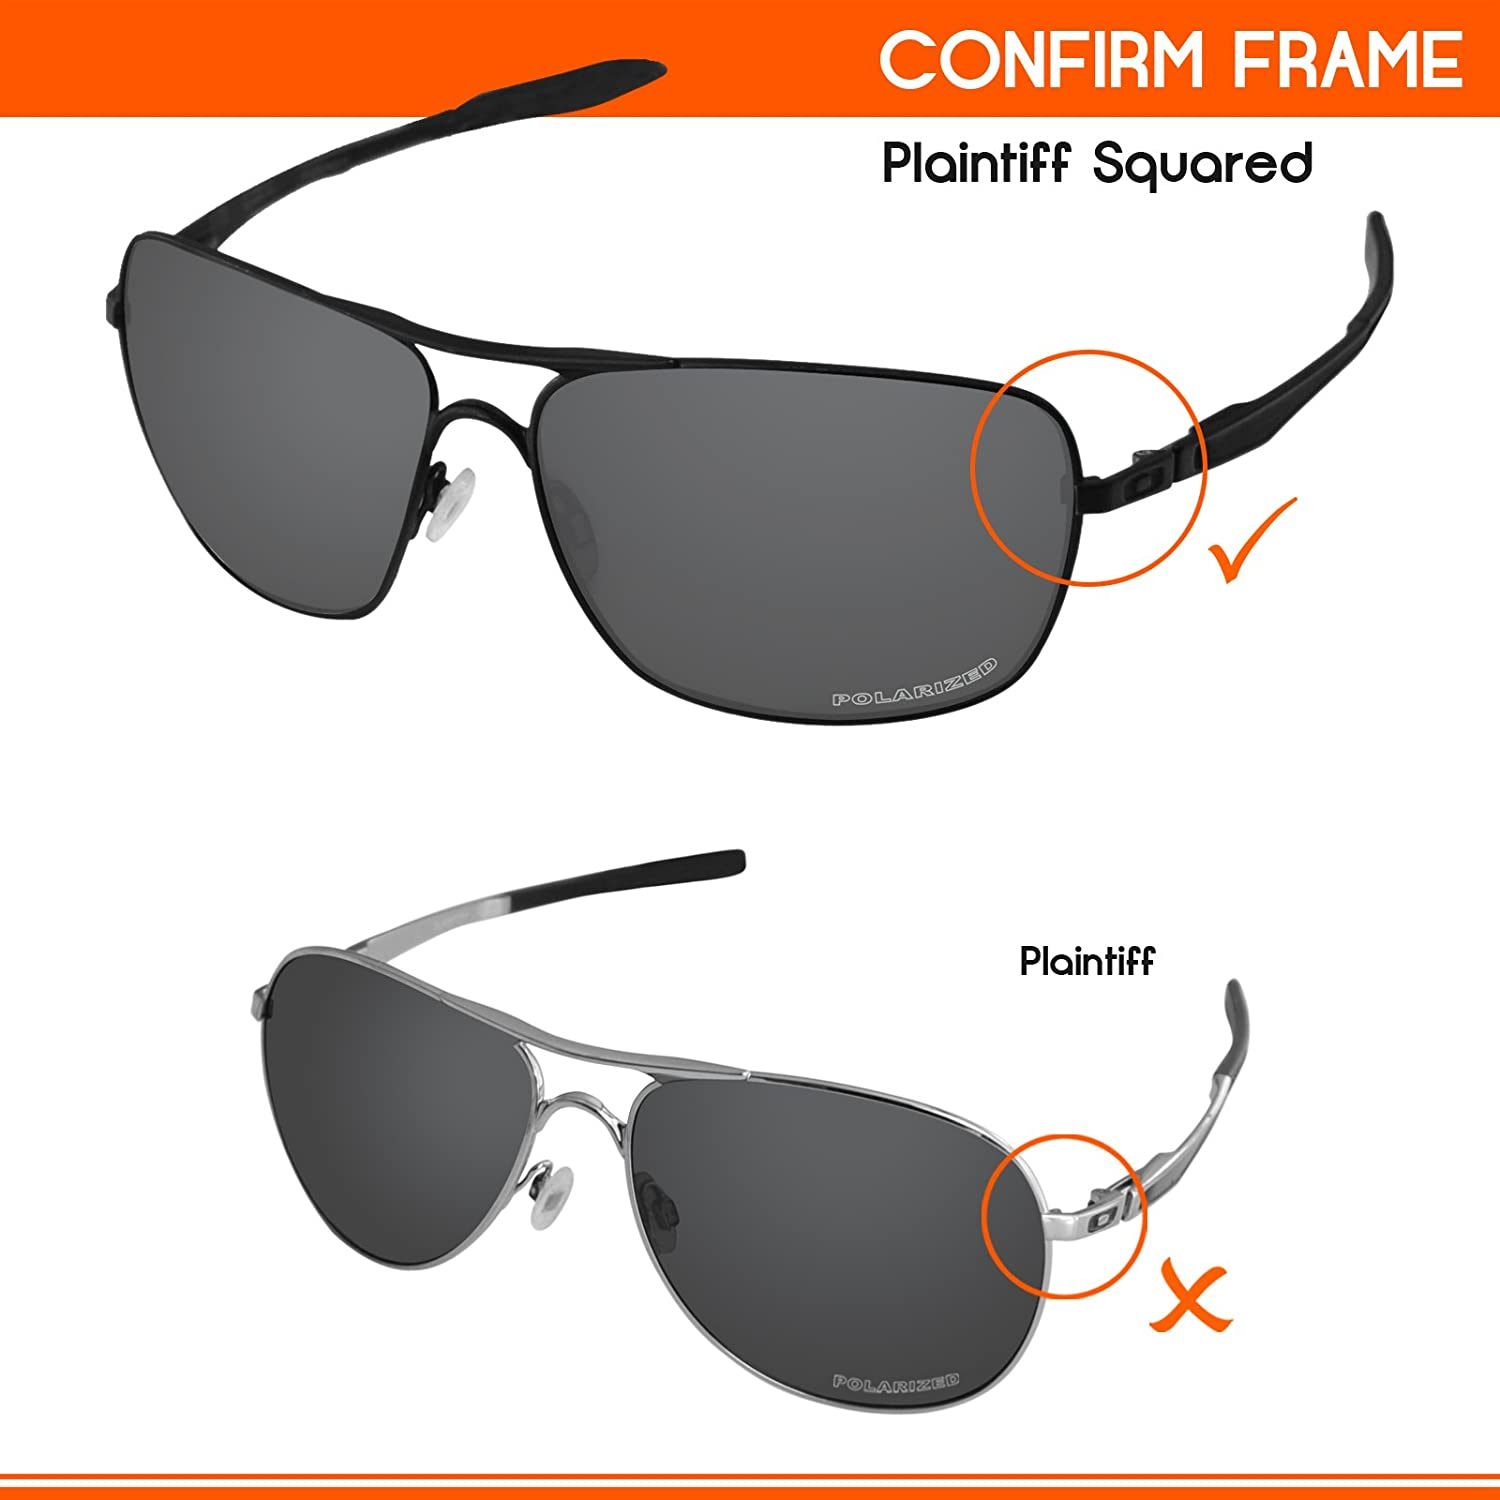 8512ced445 Amazon.com  Tintart Performance Lenses Compatible with Oakley Plaintiff  Squared Polarized Etched-Carbon Black  Clothing